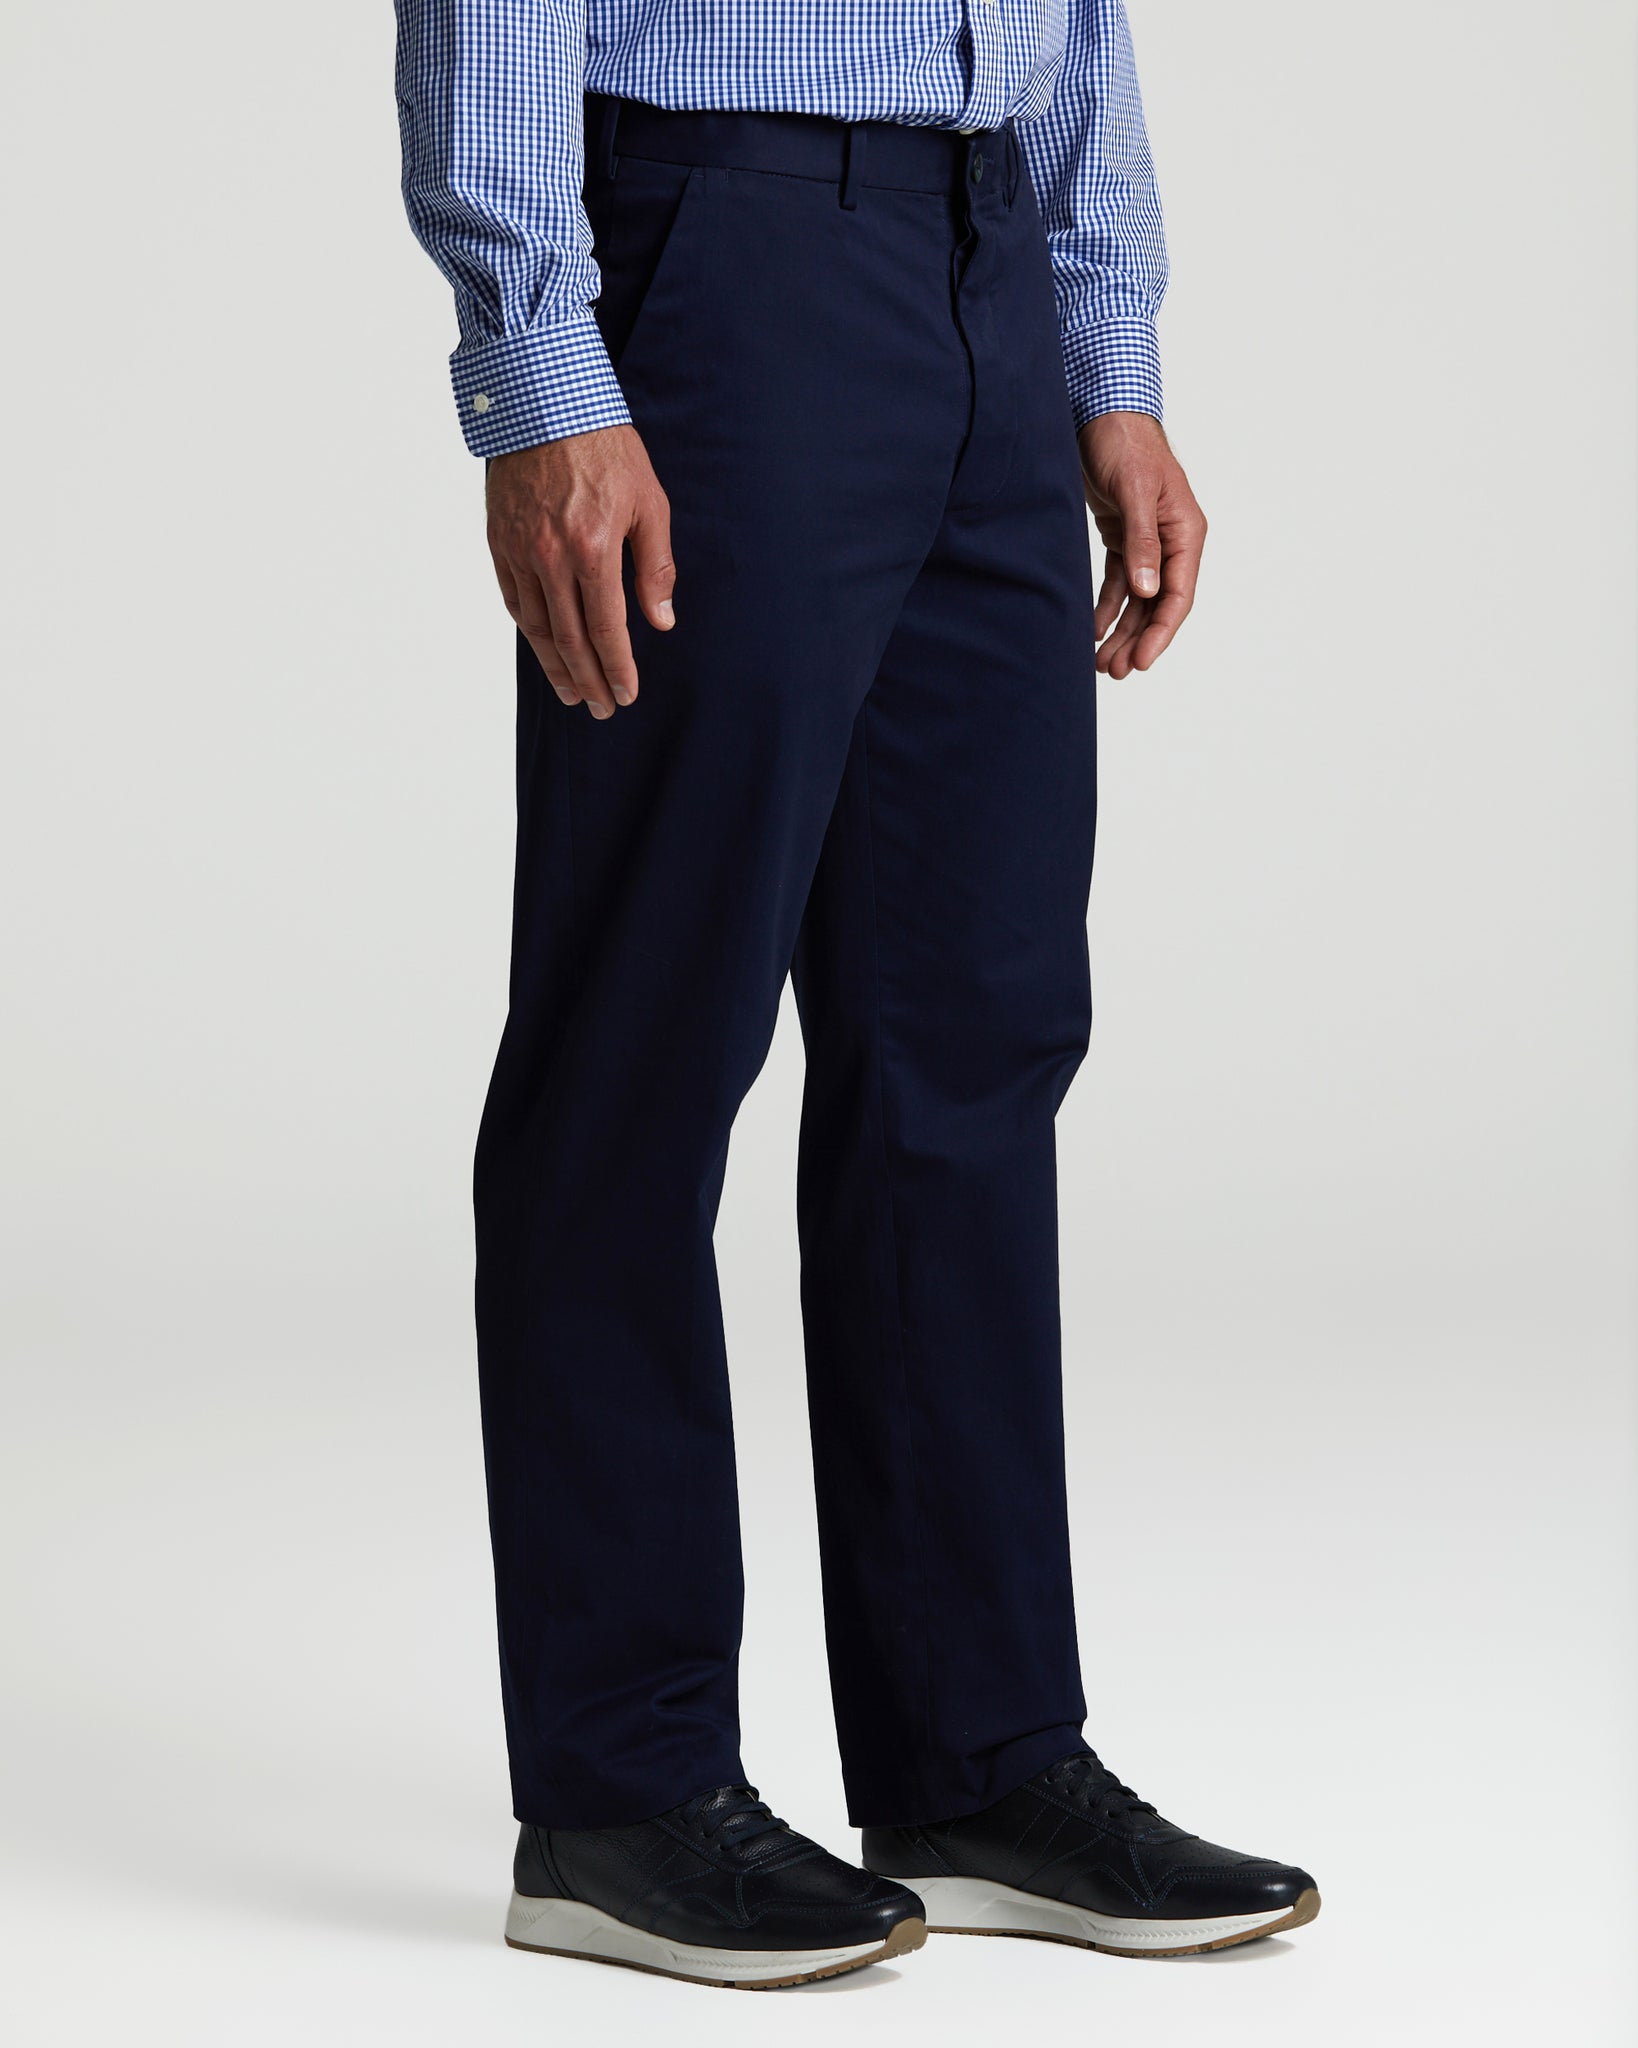 MagnaClick Classic Fit Chino